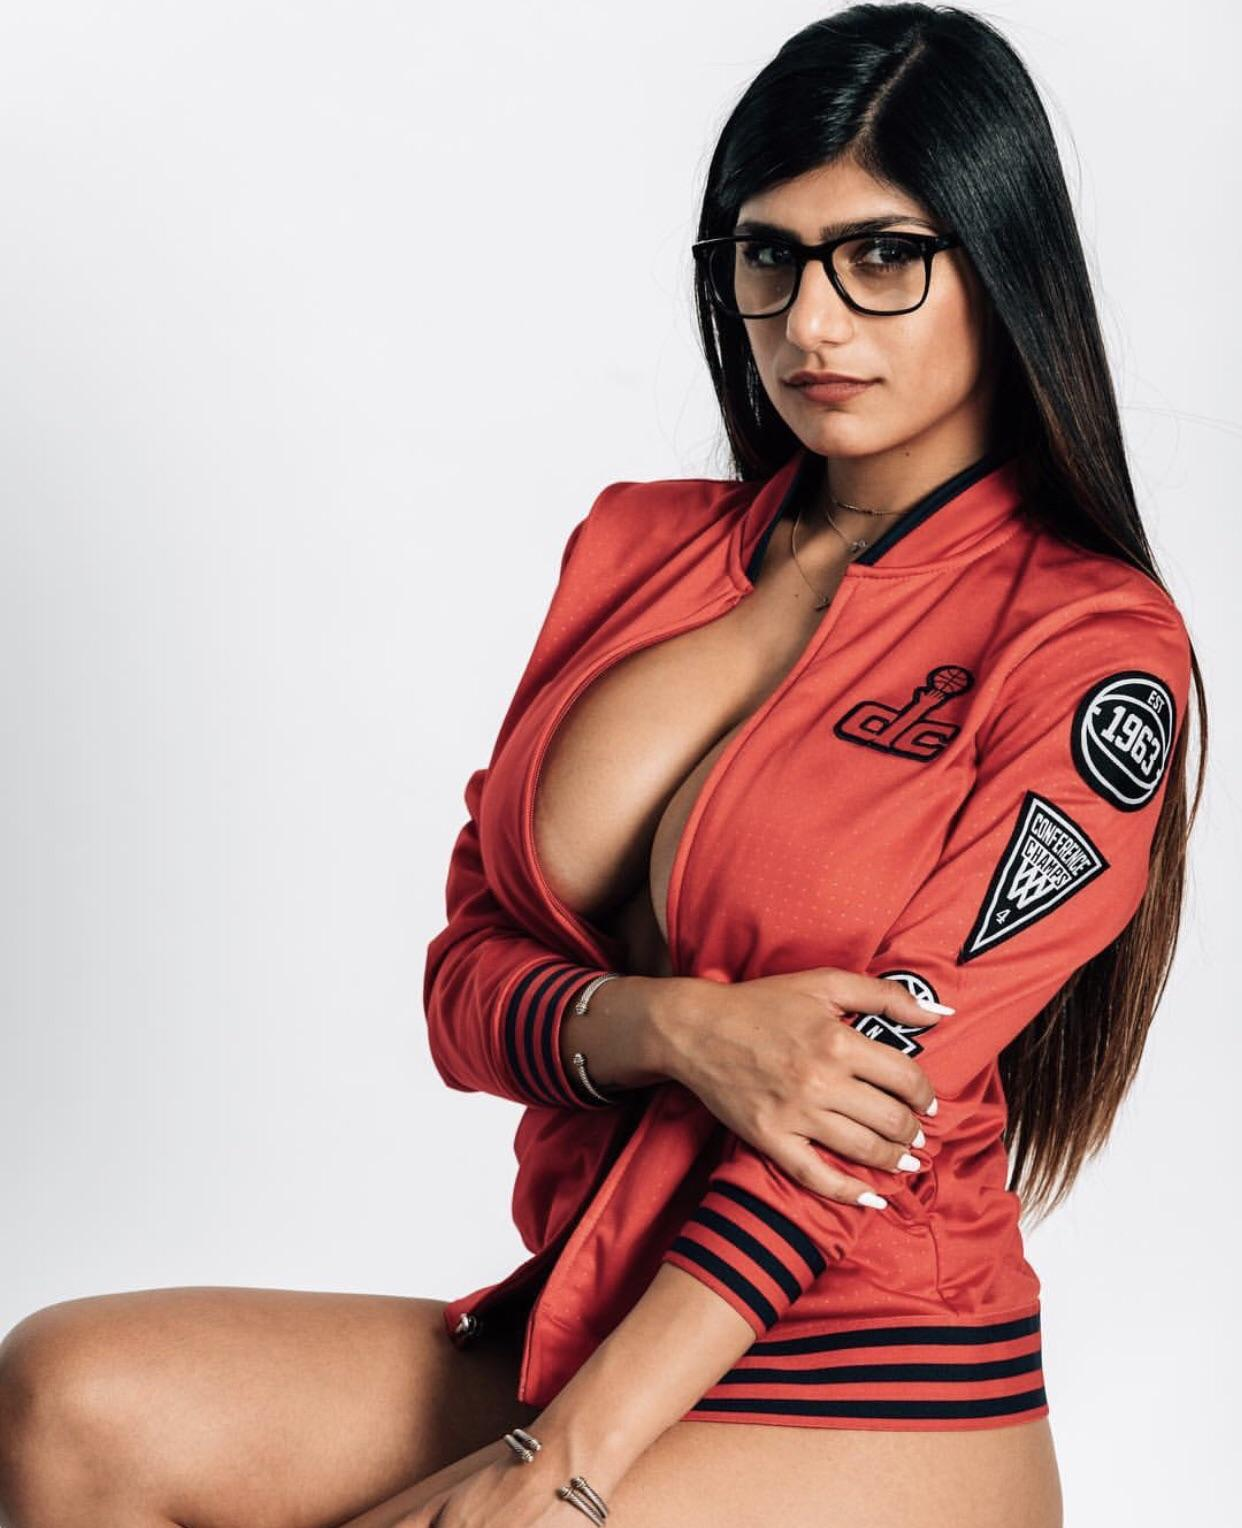 Mia Khalifa big